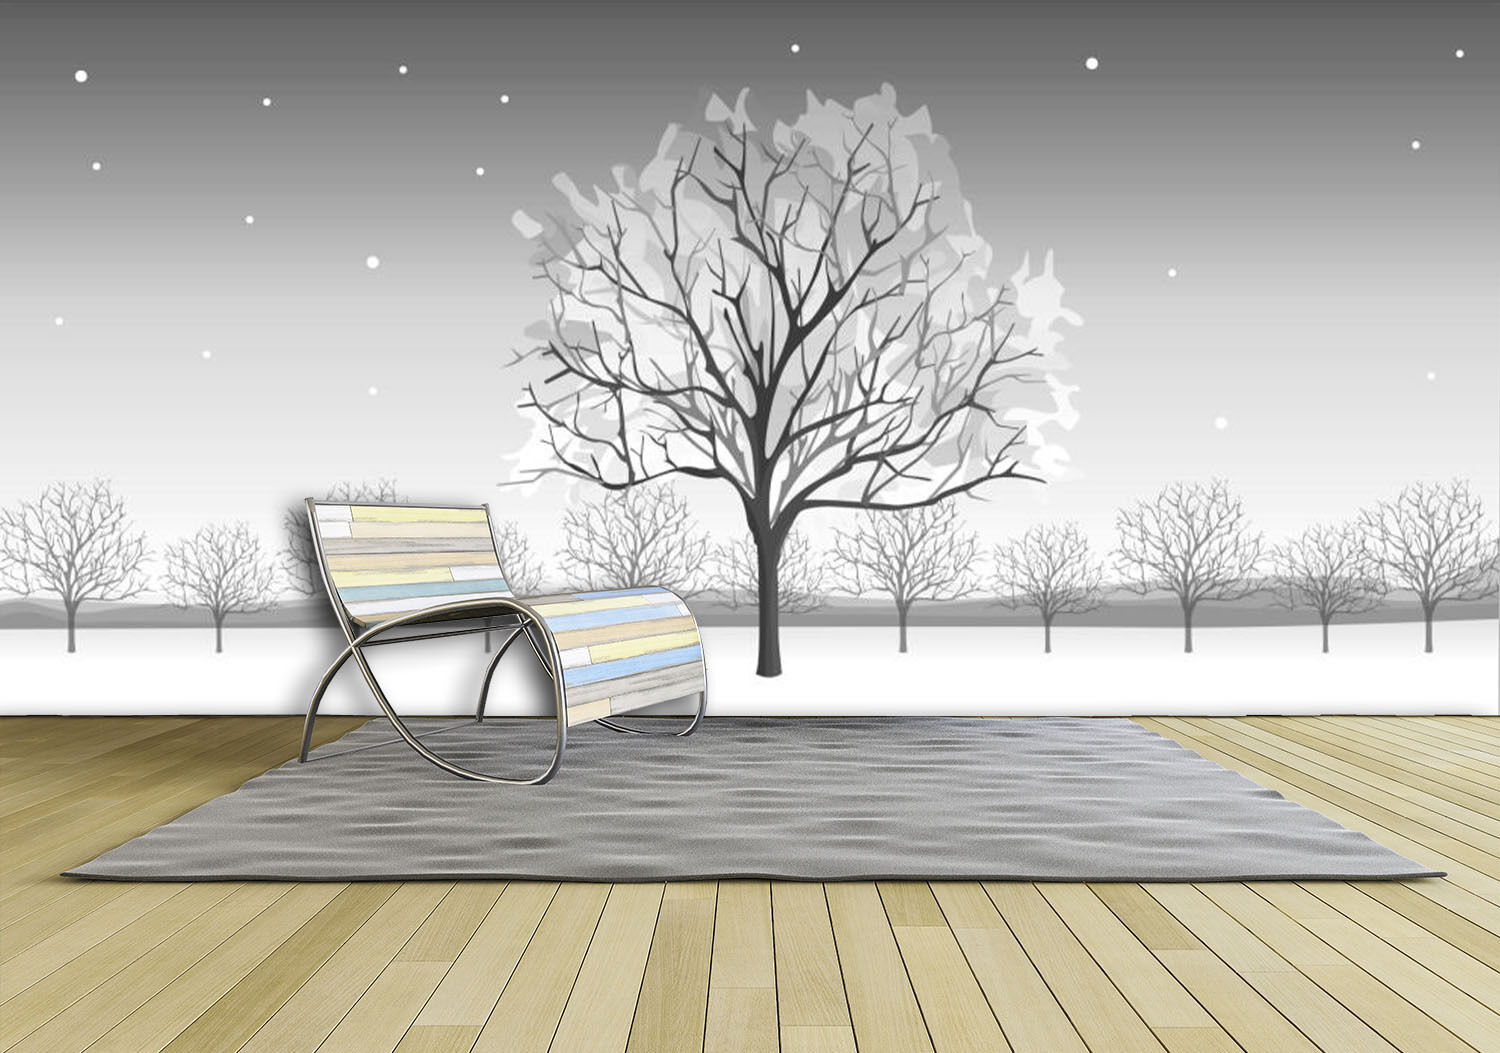 3D Snow, one tree 00 Wall Paper Print Wall Decal Deco Indoor Wall Murals